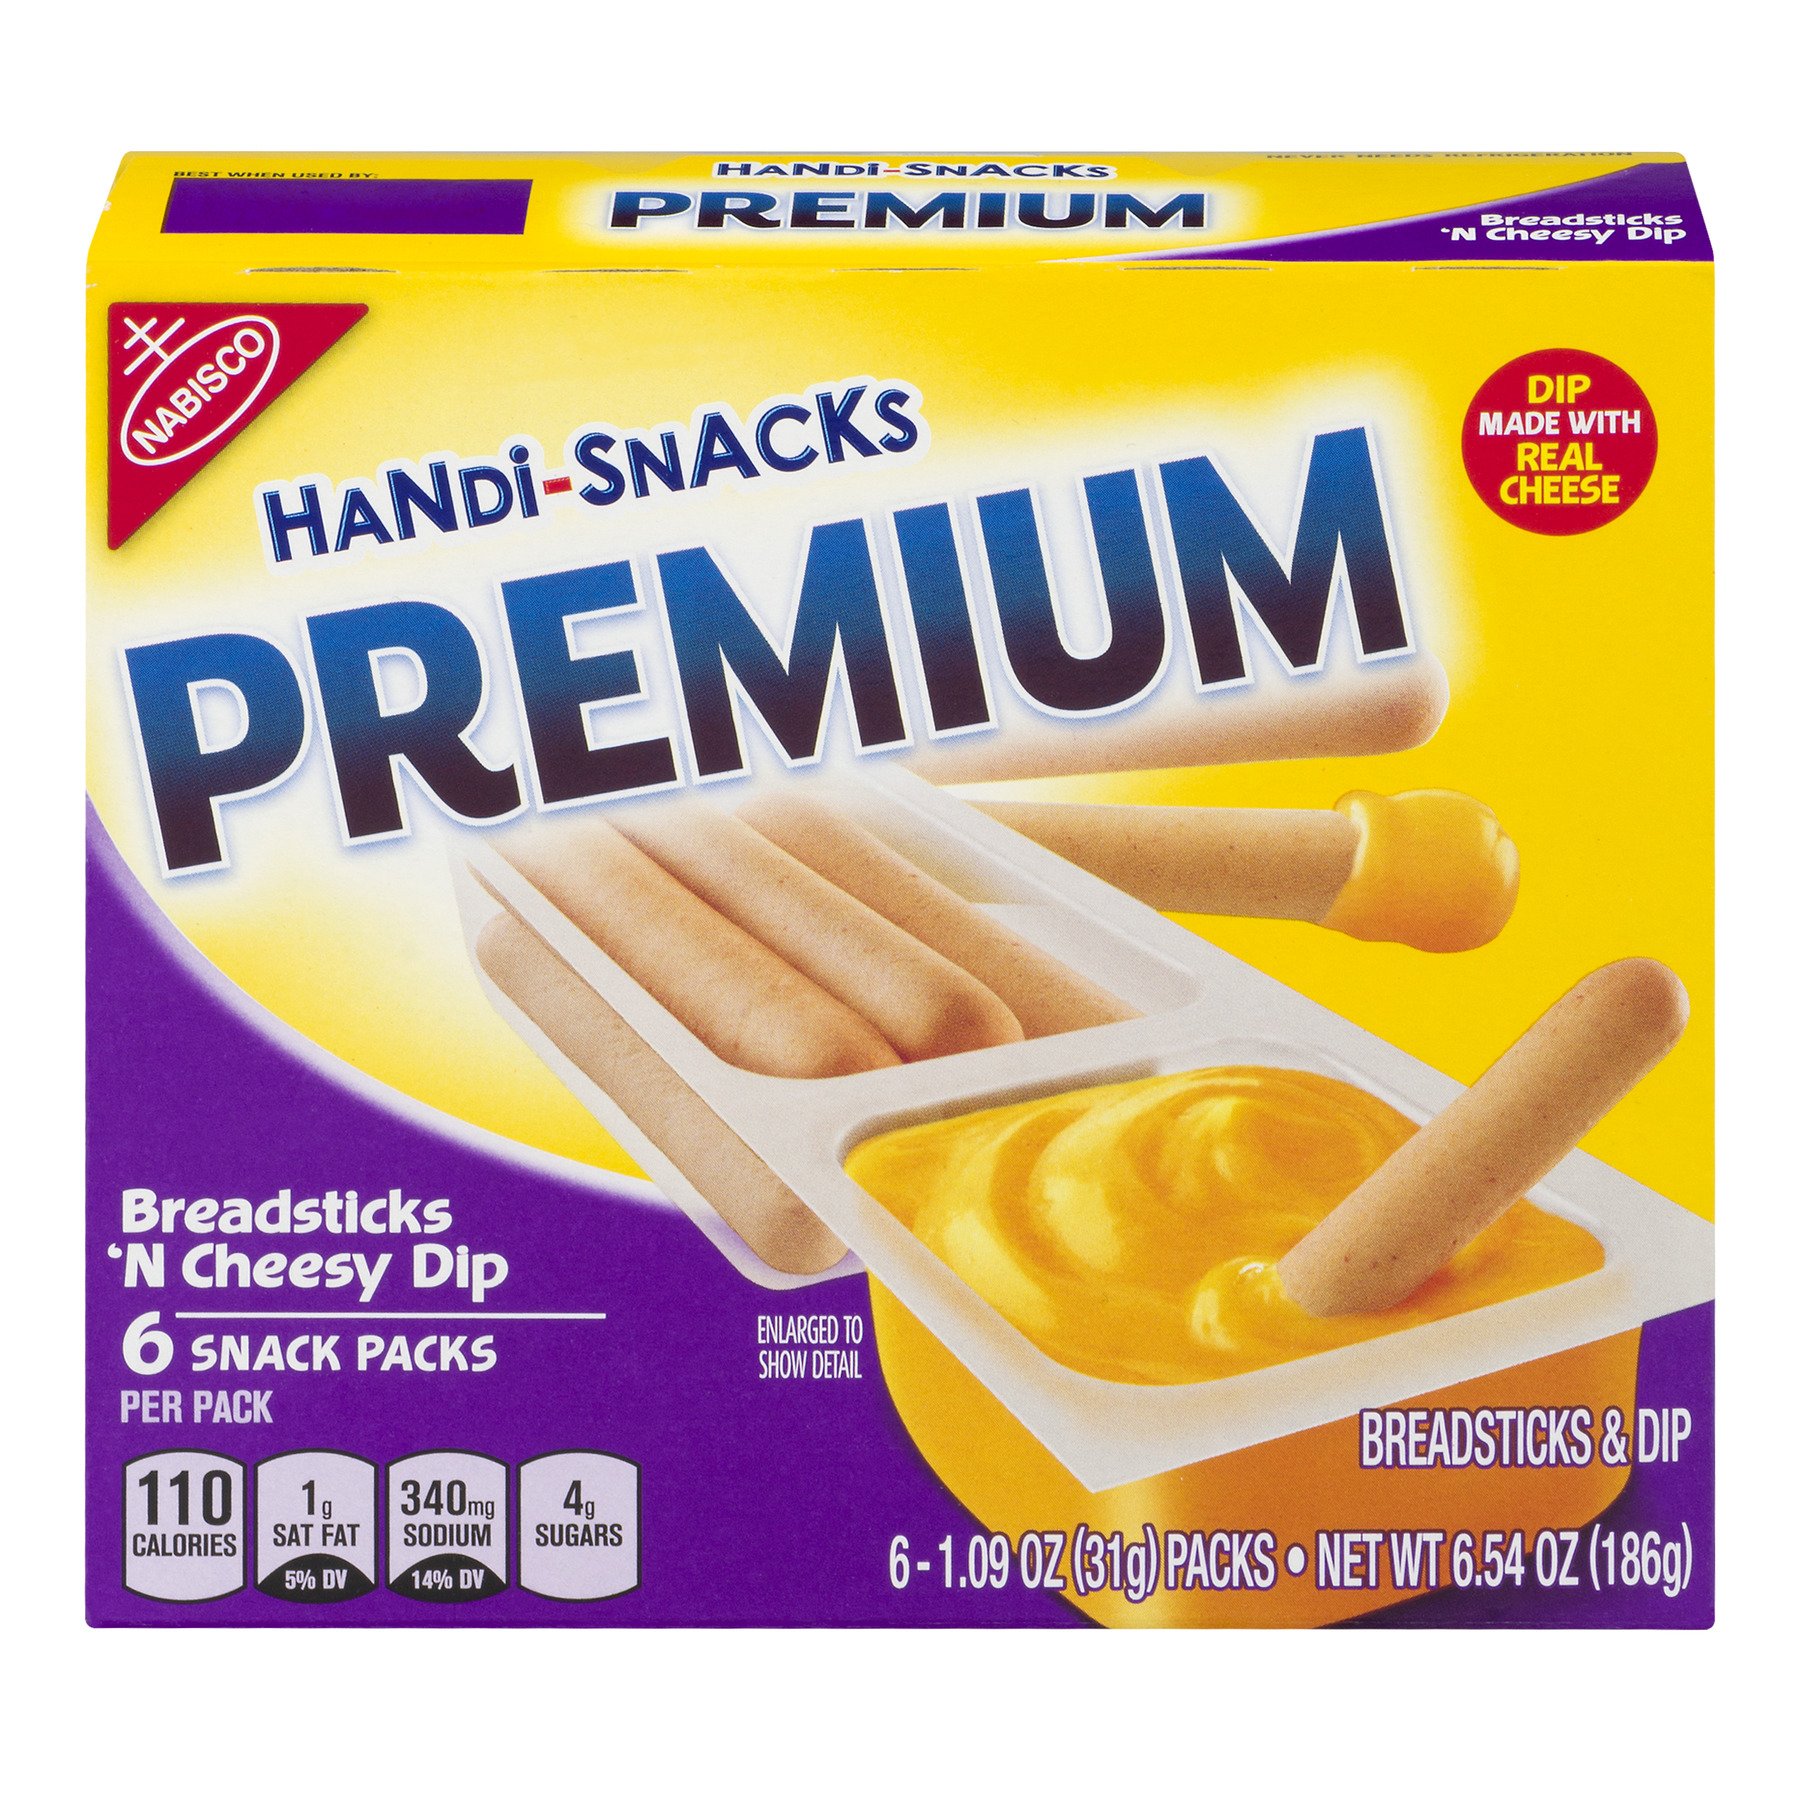 Nabisco Handi-Snacks Premium Snack Packs Breadsticks 'N Cheesy Dip - 6 CT1.09 OZ